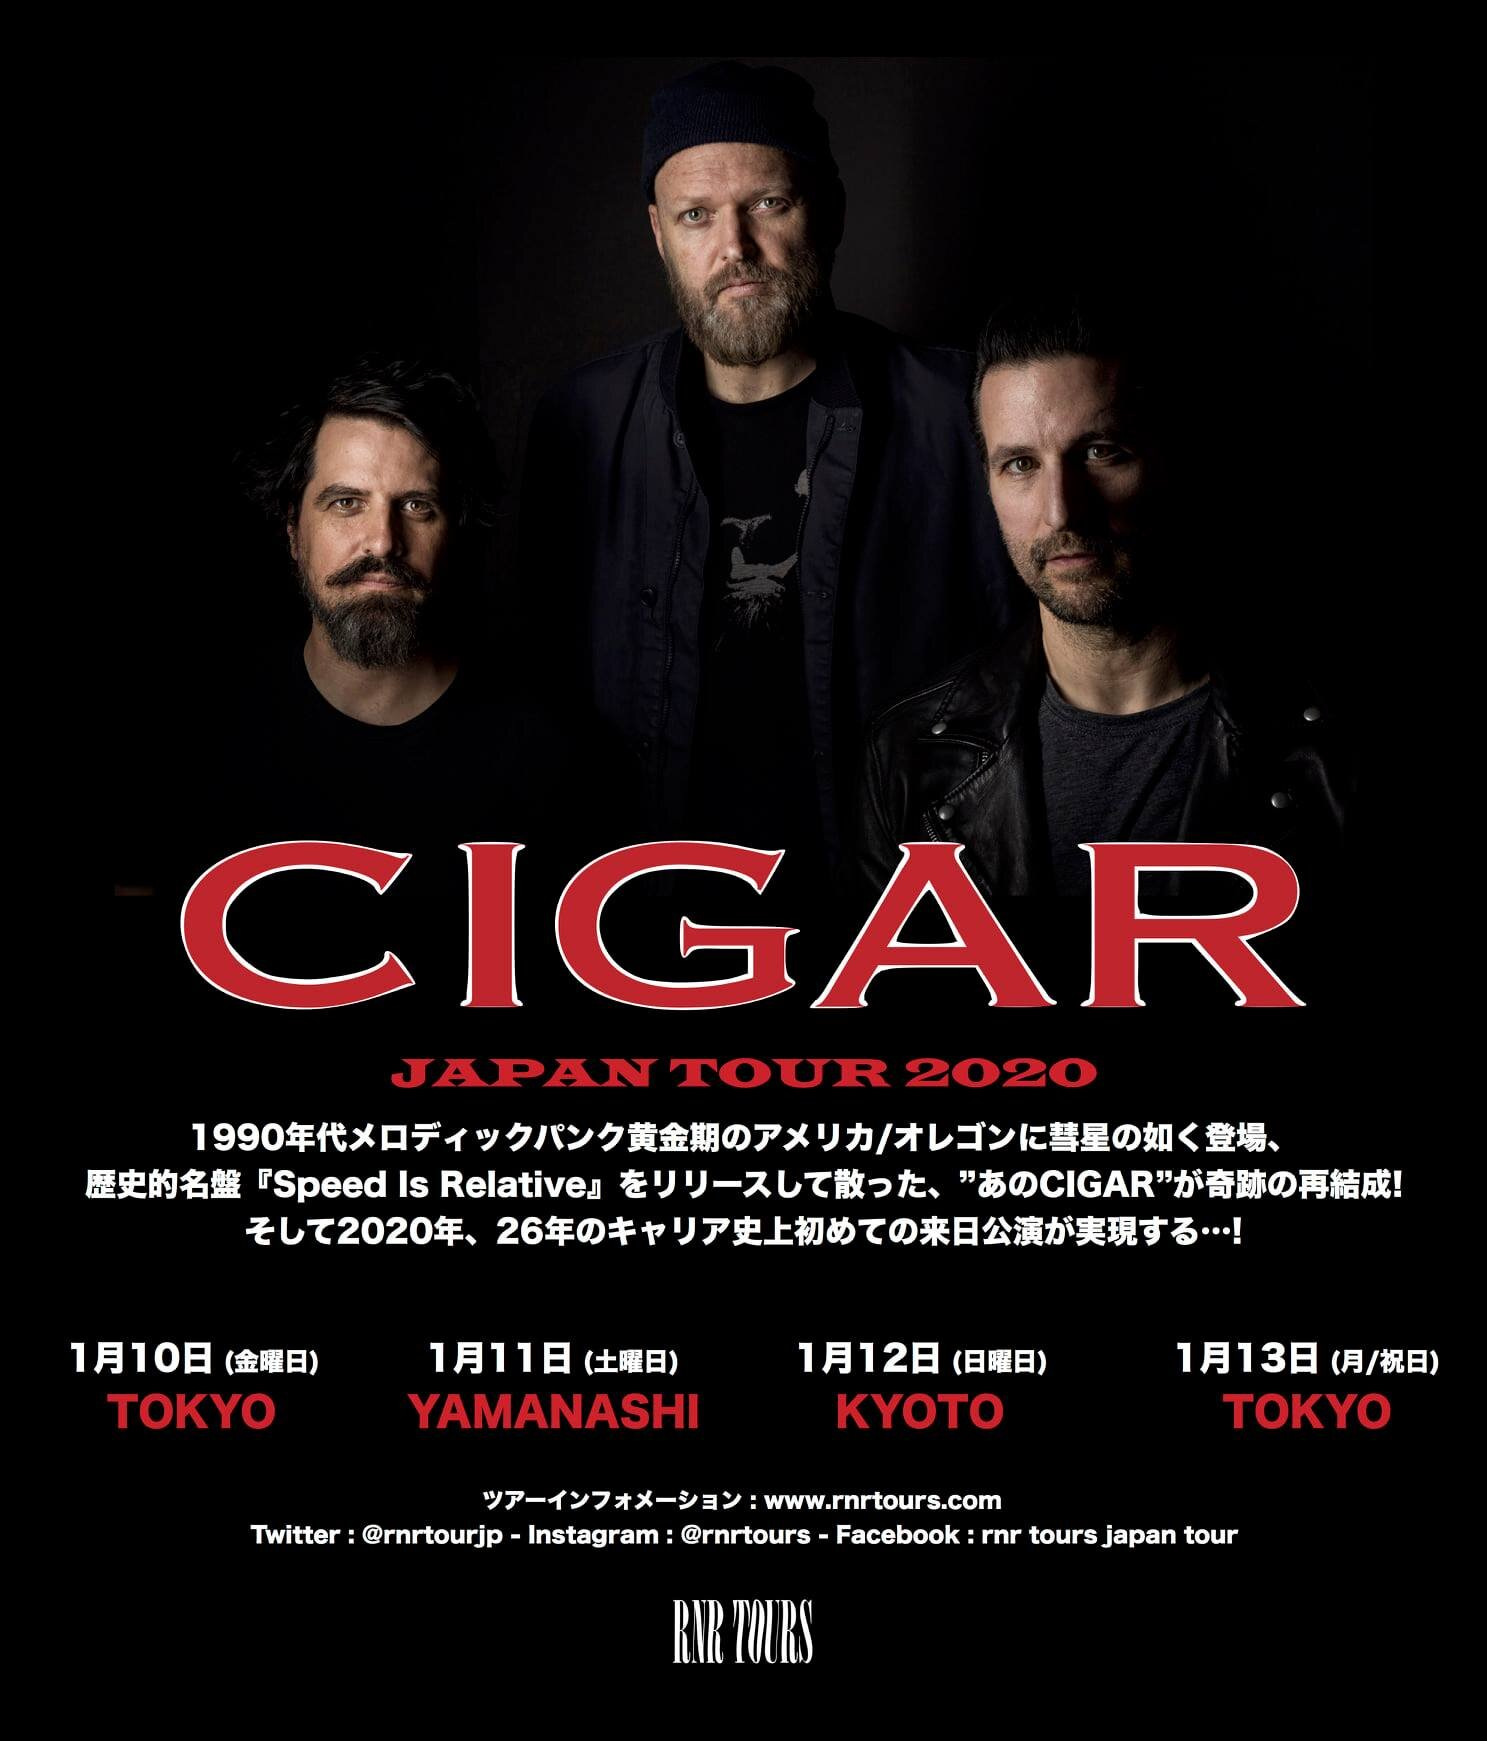 Tour Announcement: Cigar Japan Tour 2020 - Sept 30, 2019